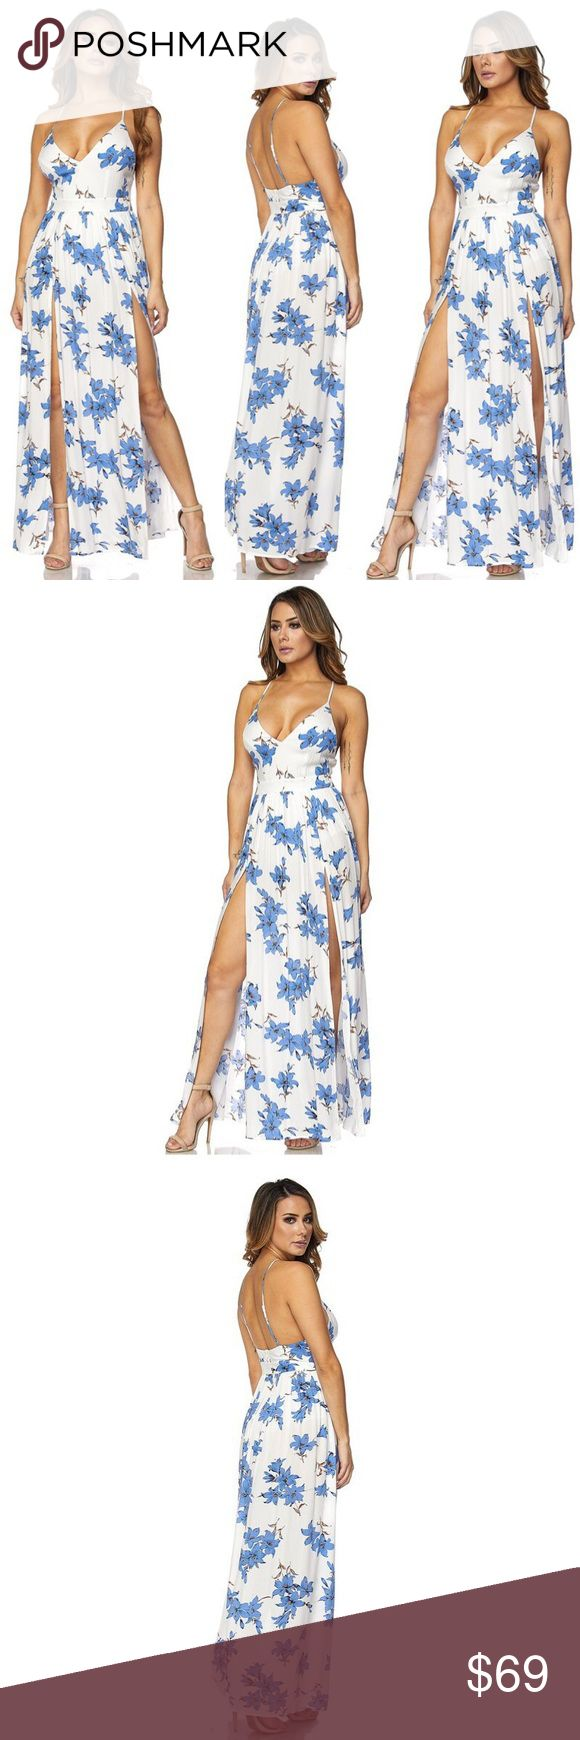 Venus 2 Maxi Dress Blair House Boutique Dresses